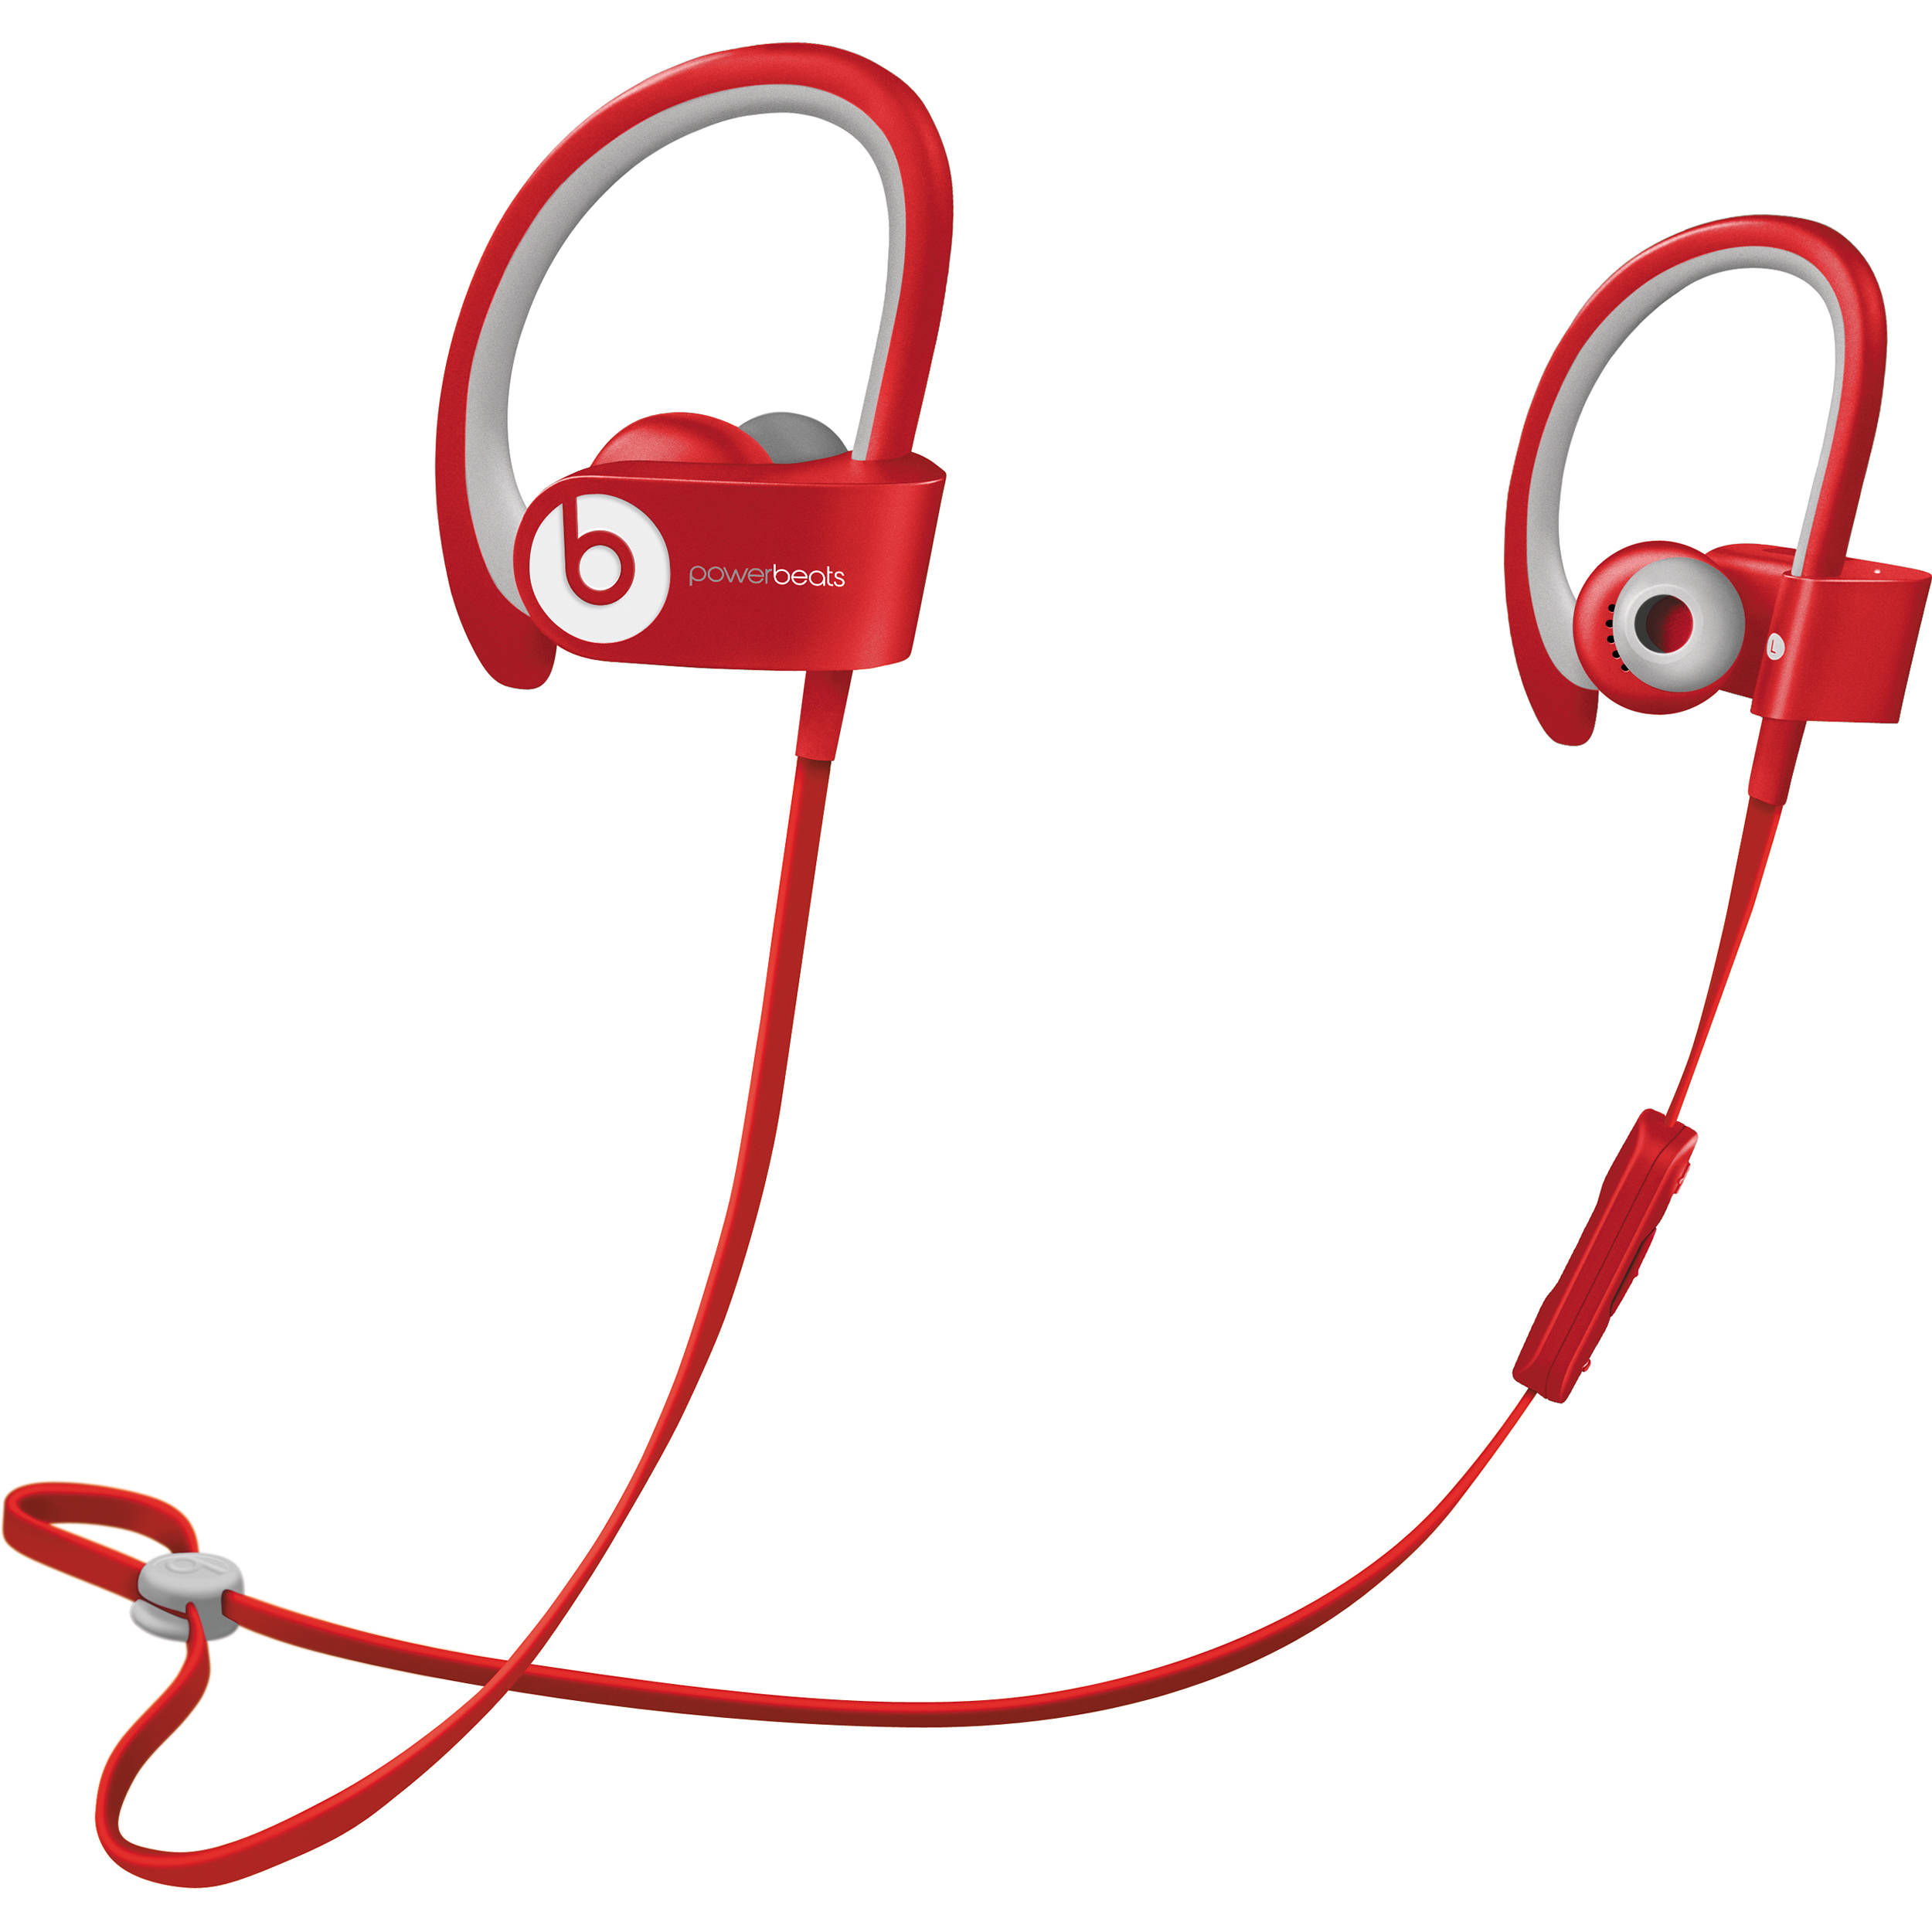 Beats by Dr  Dre Powerbeats2 Wireless Earbuds (Red)